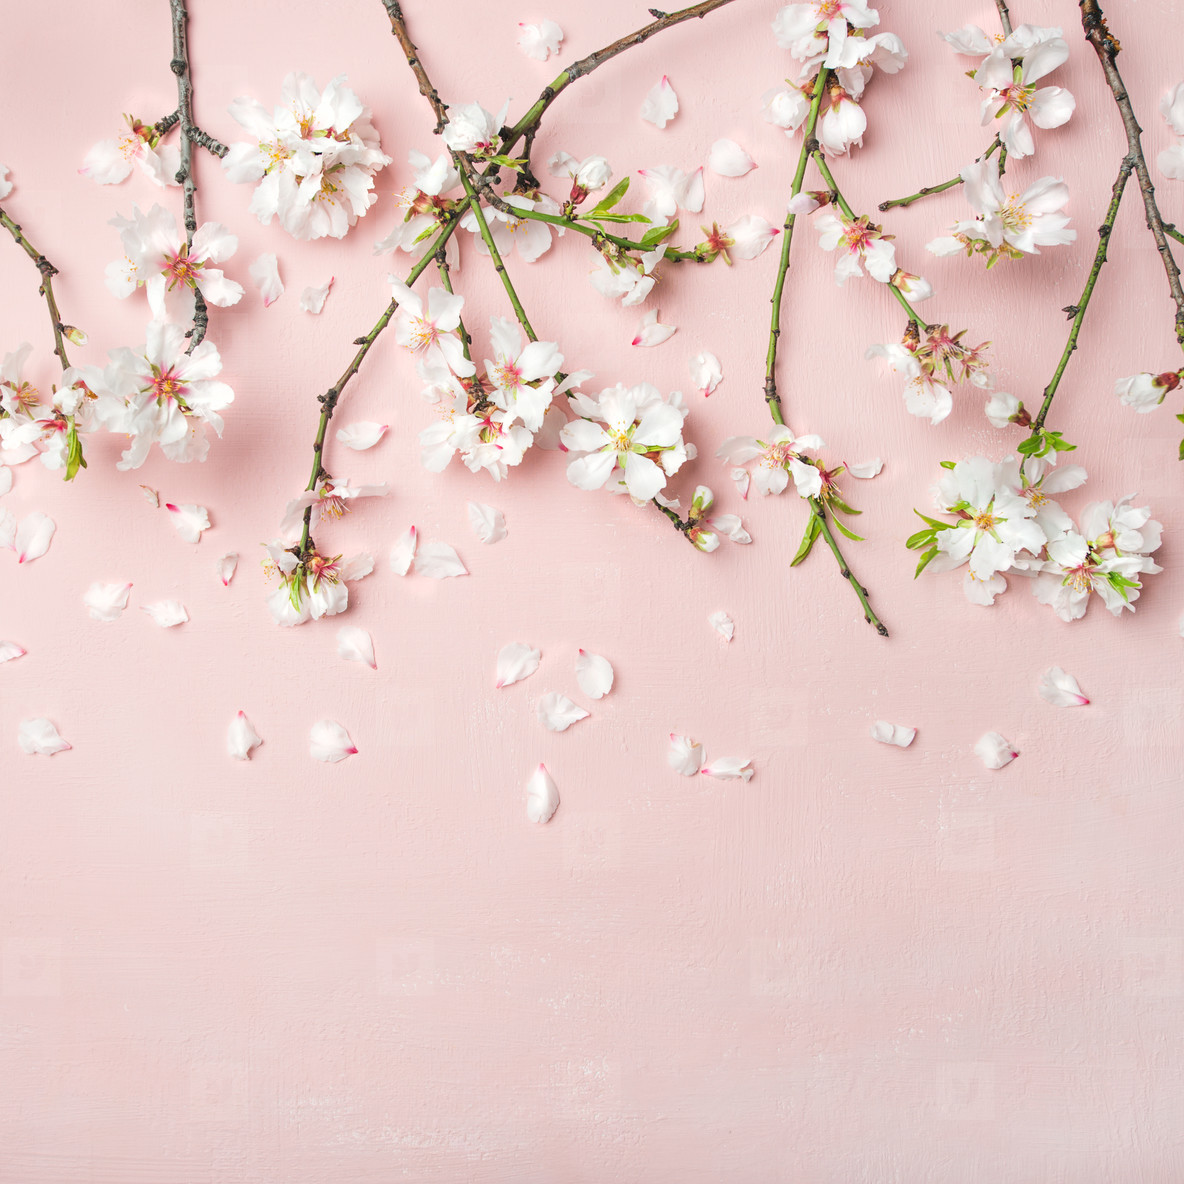 Rose #pink #square #aesthetic #flower image by. Photos - Spring almond blossom flowers over li 170244 ...